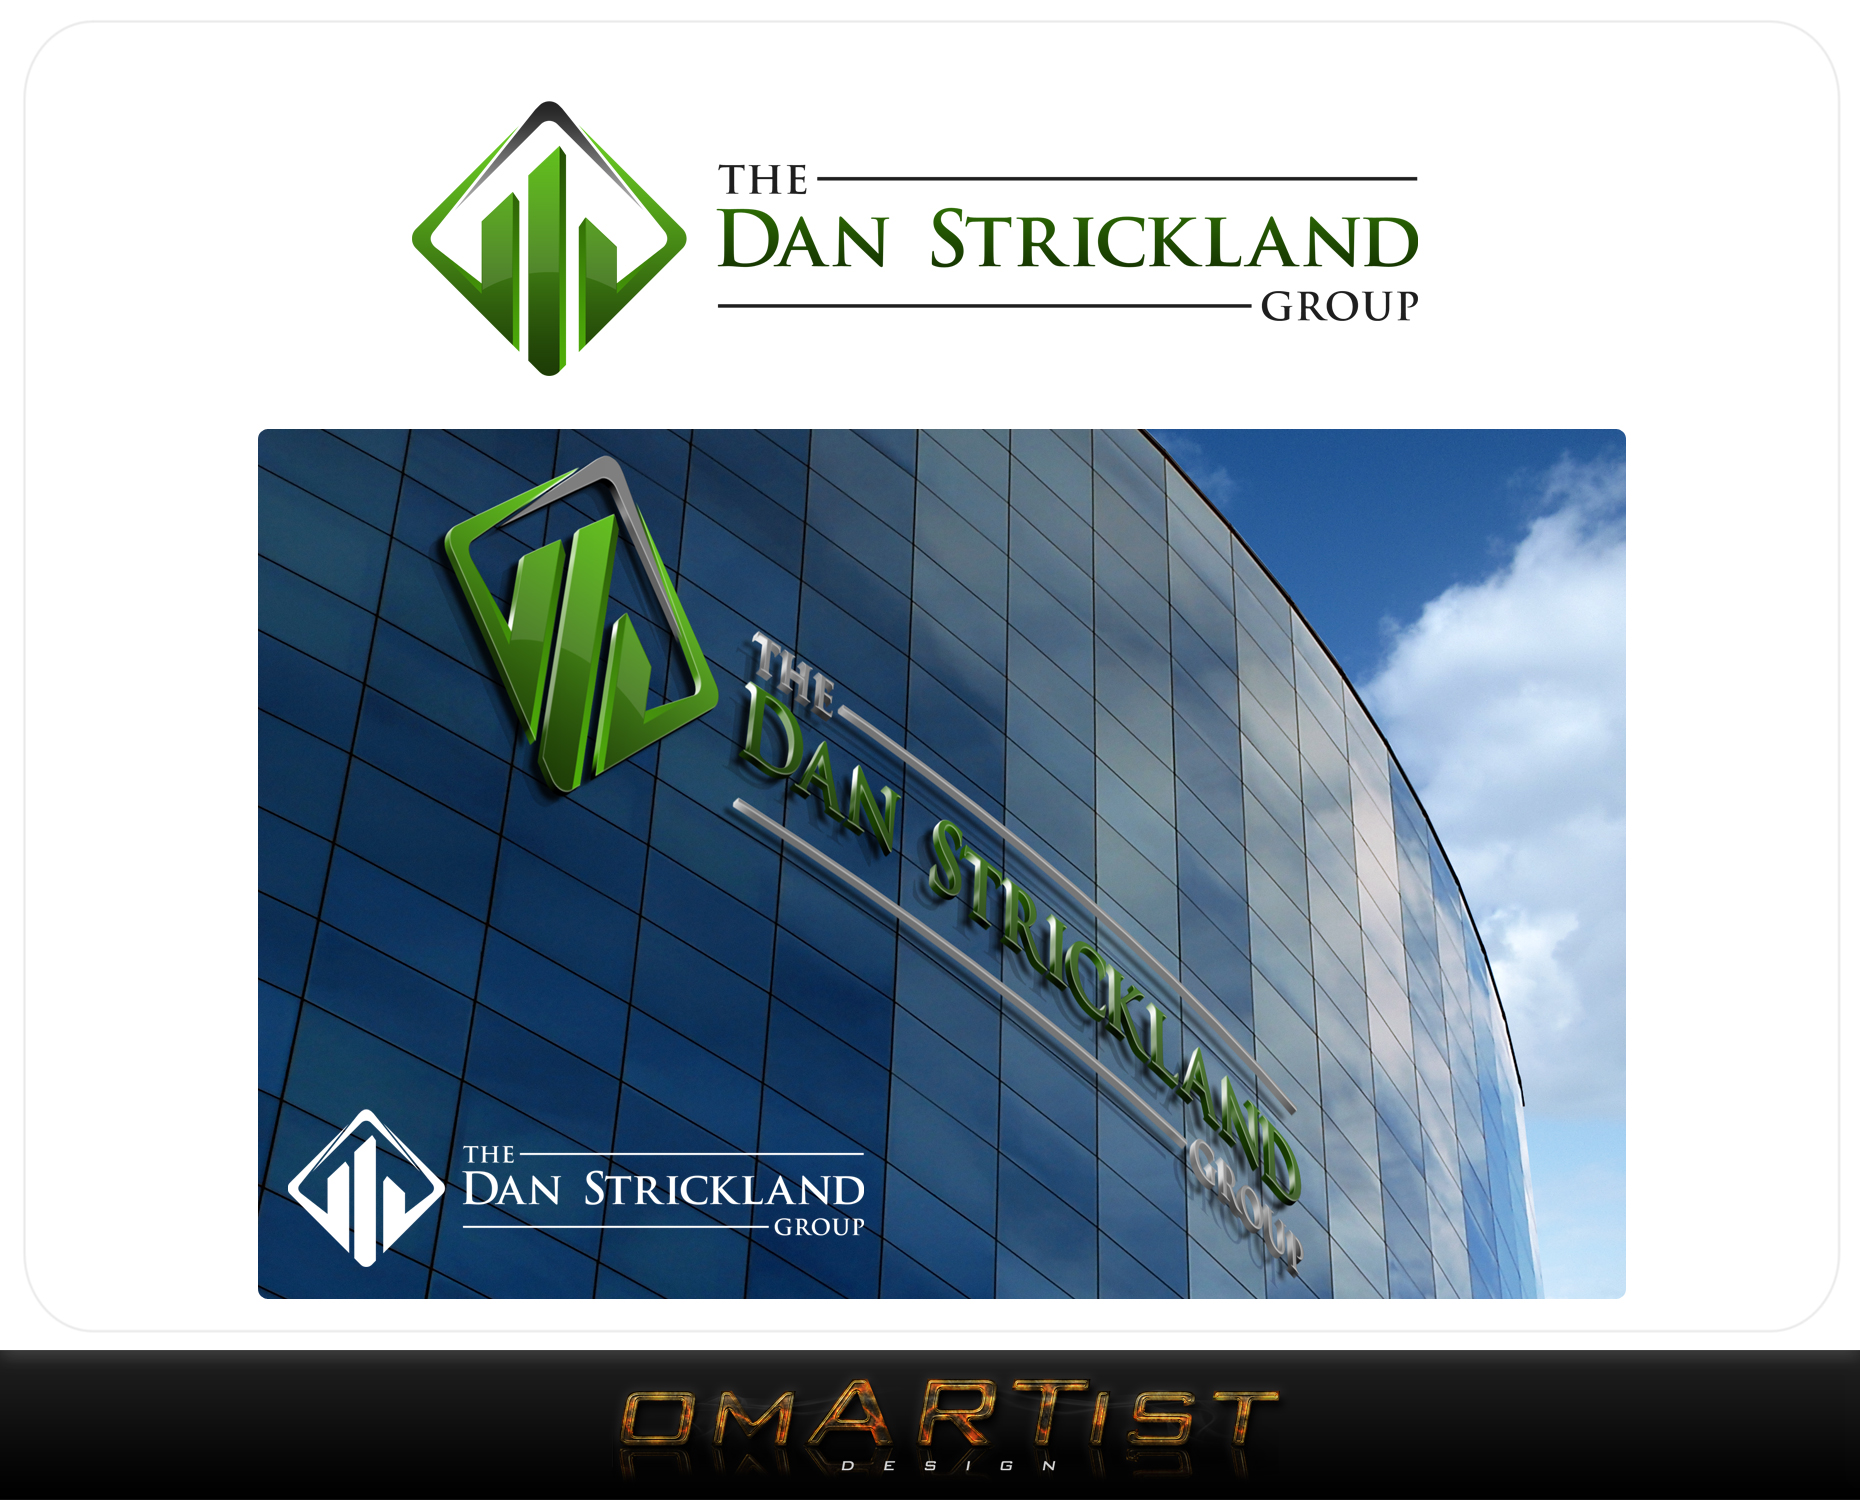 Logo Design by omARTist - Entry No. 224 in the Logo Design Contest Creative Logo Design for The Dan Strickland Group.